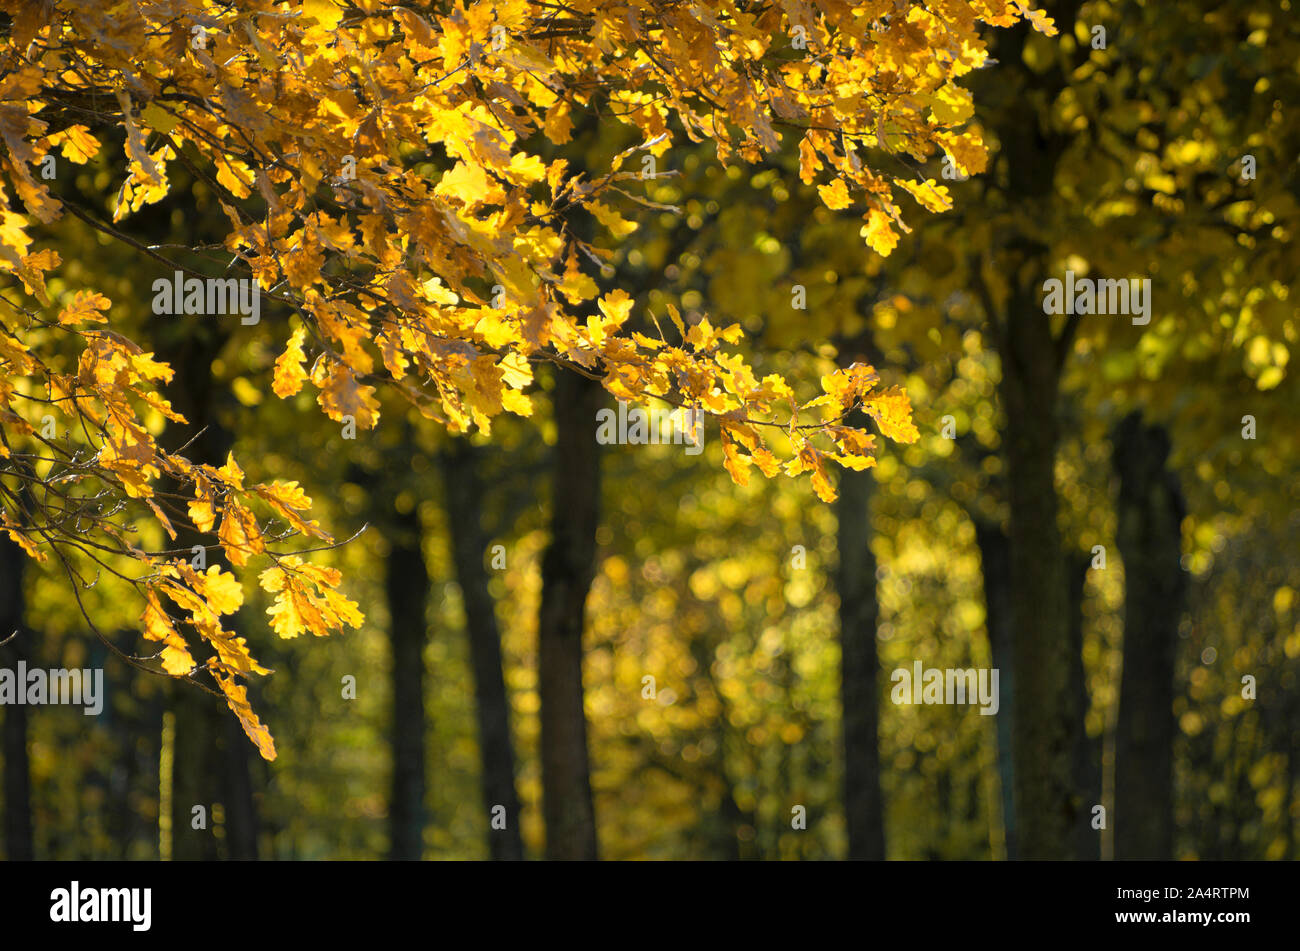 Sunlit golden oak leaves on a clear Indian summer day Stock Photo